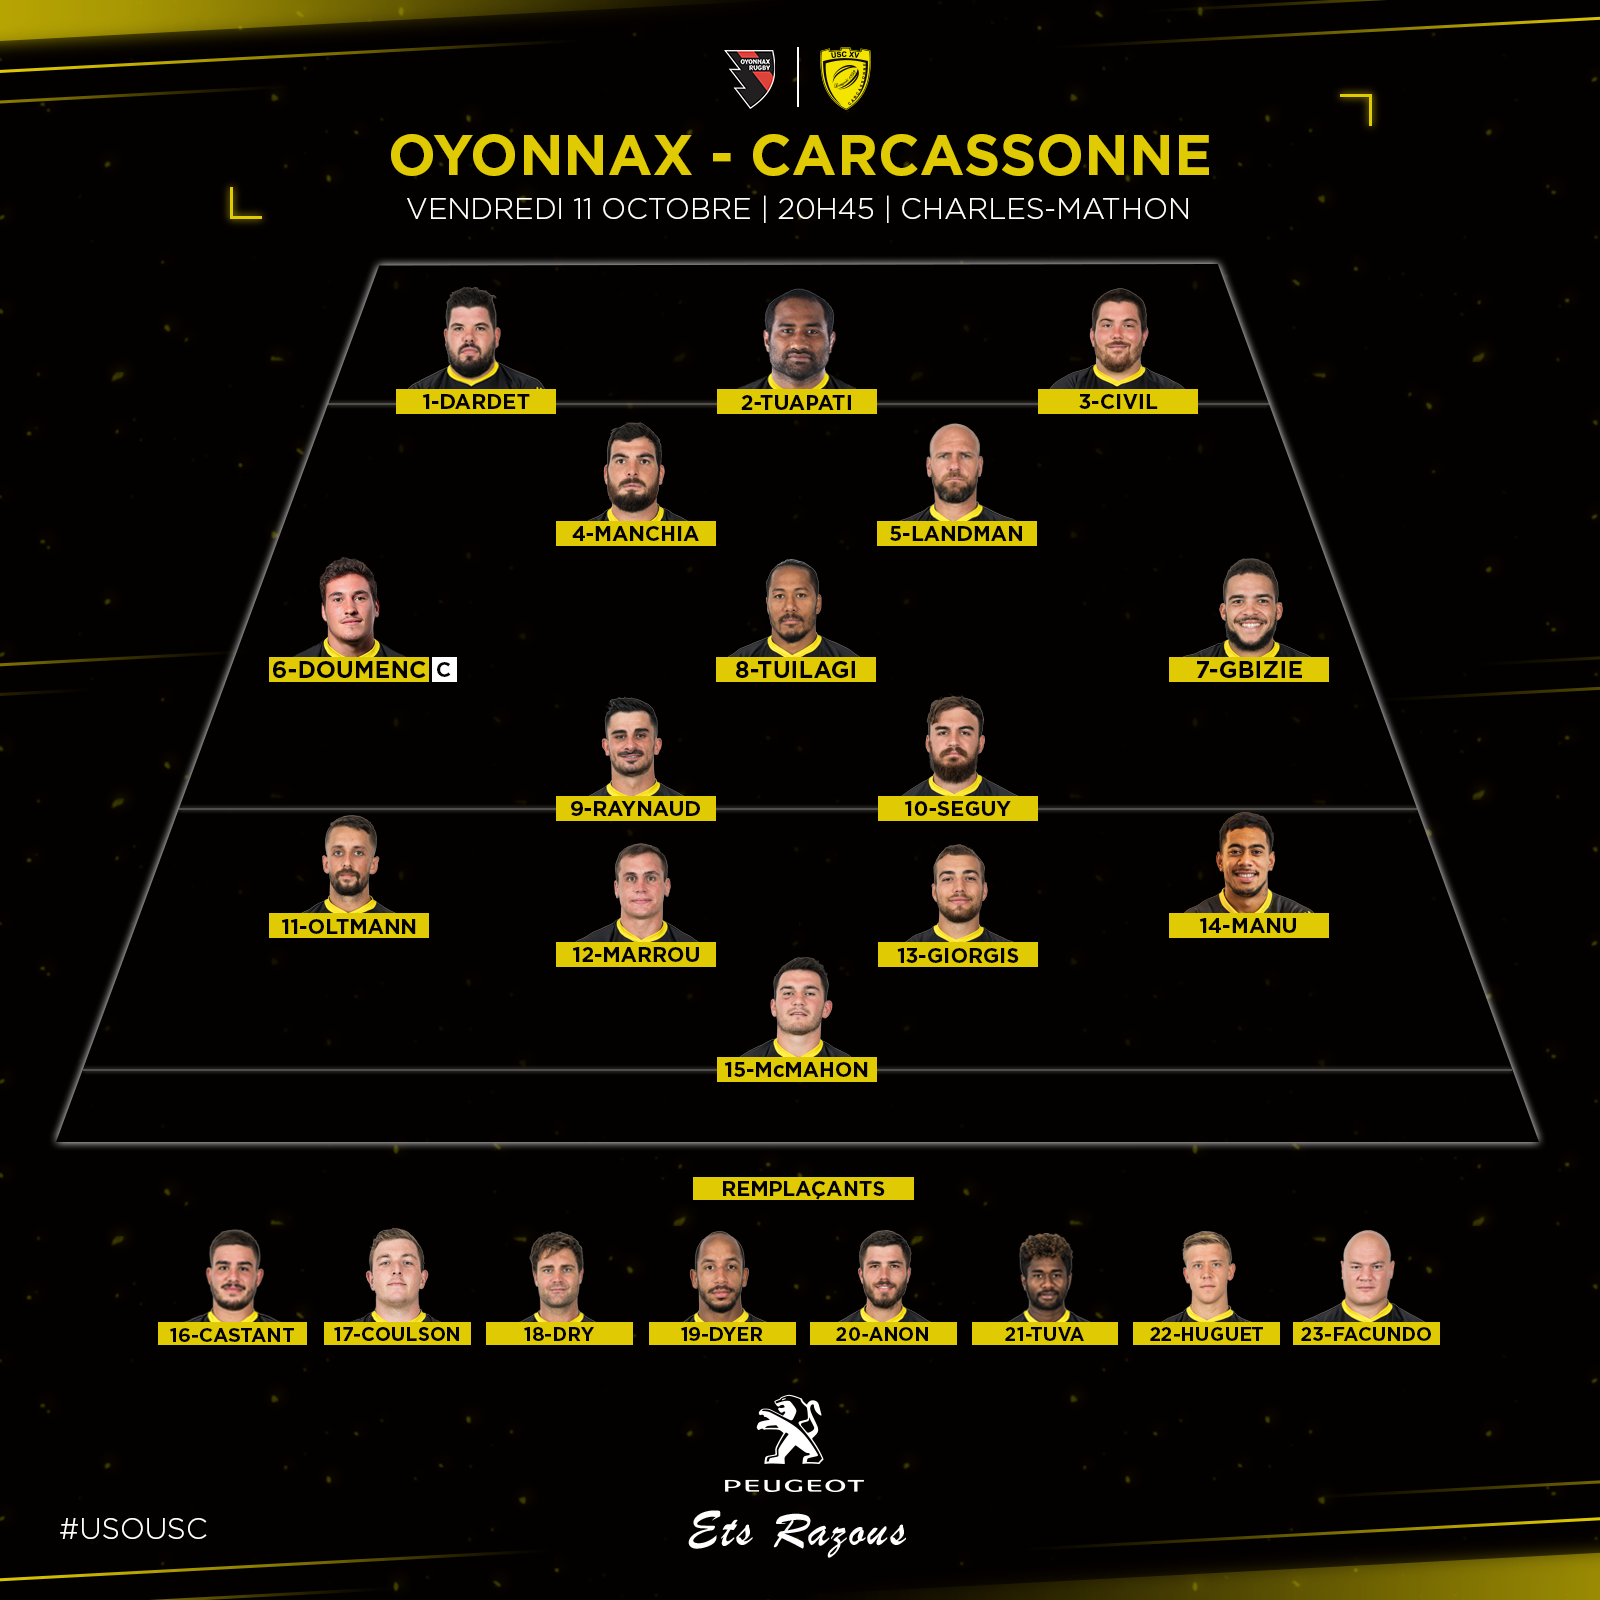 Composition Oyonnax